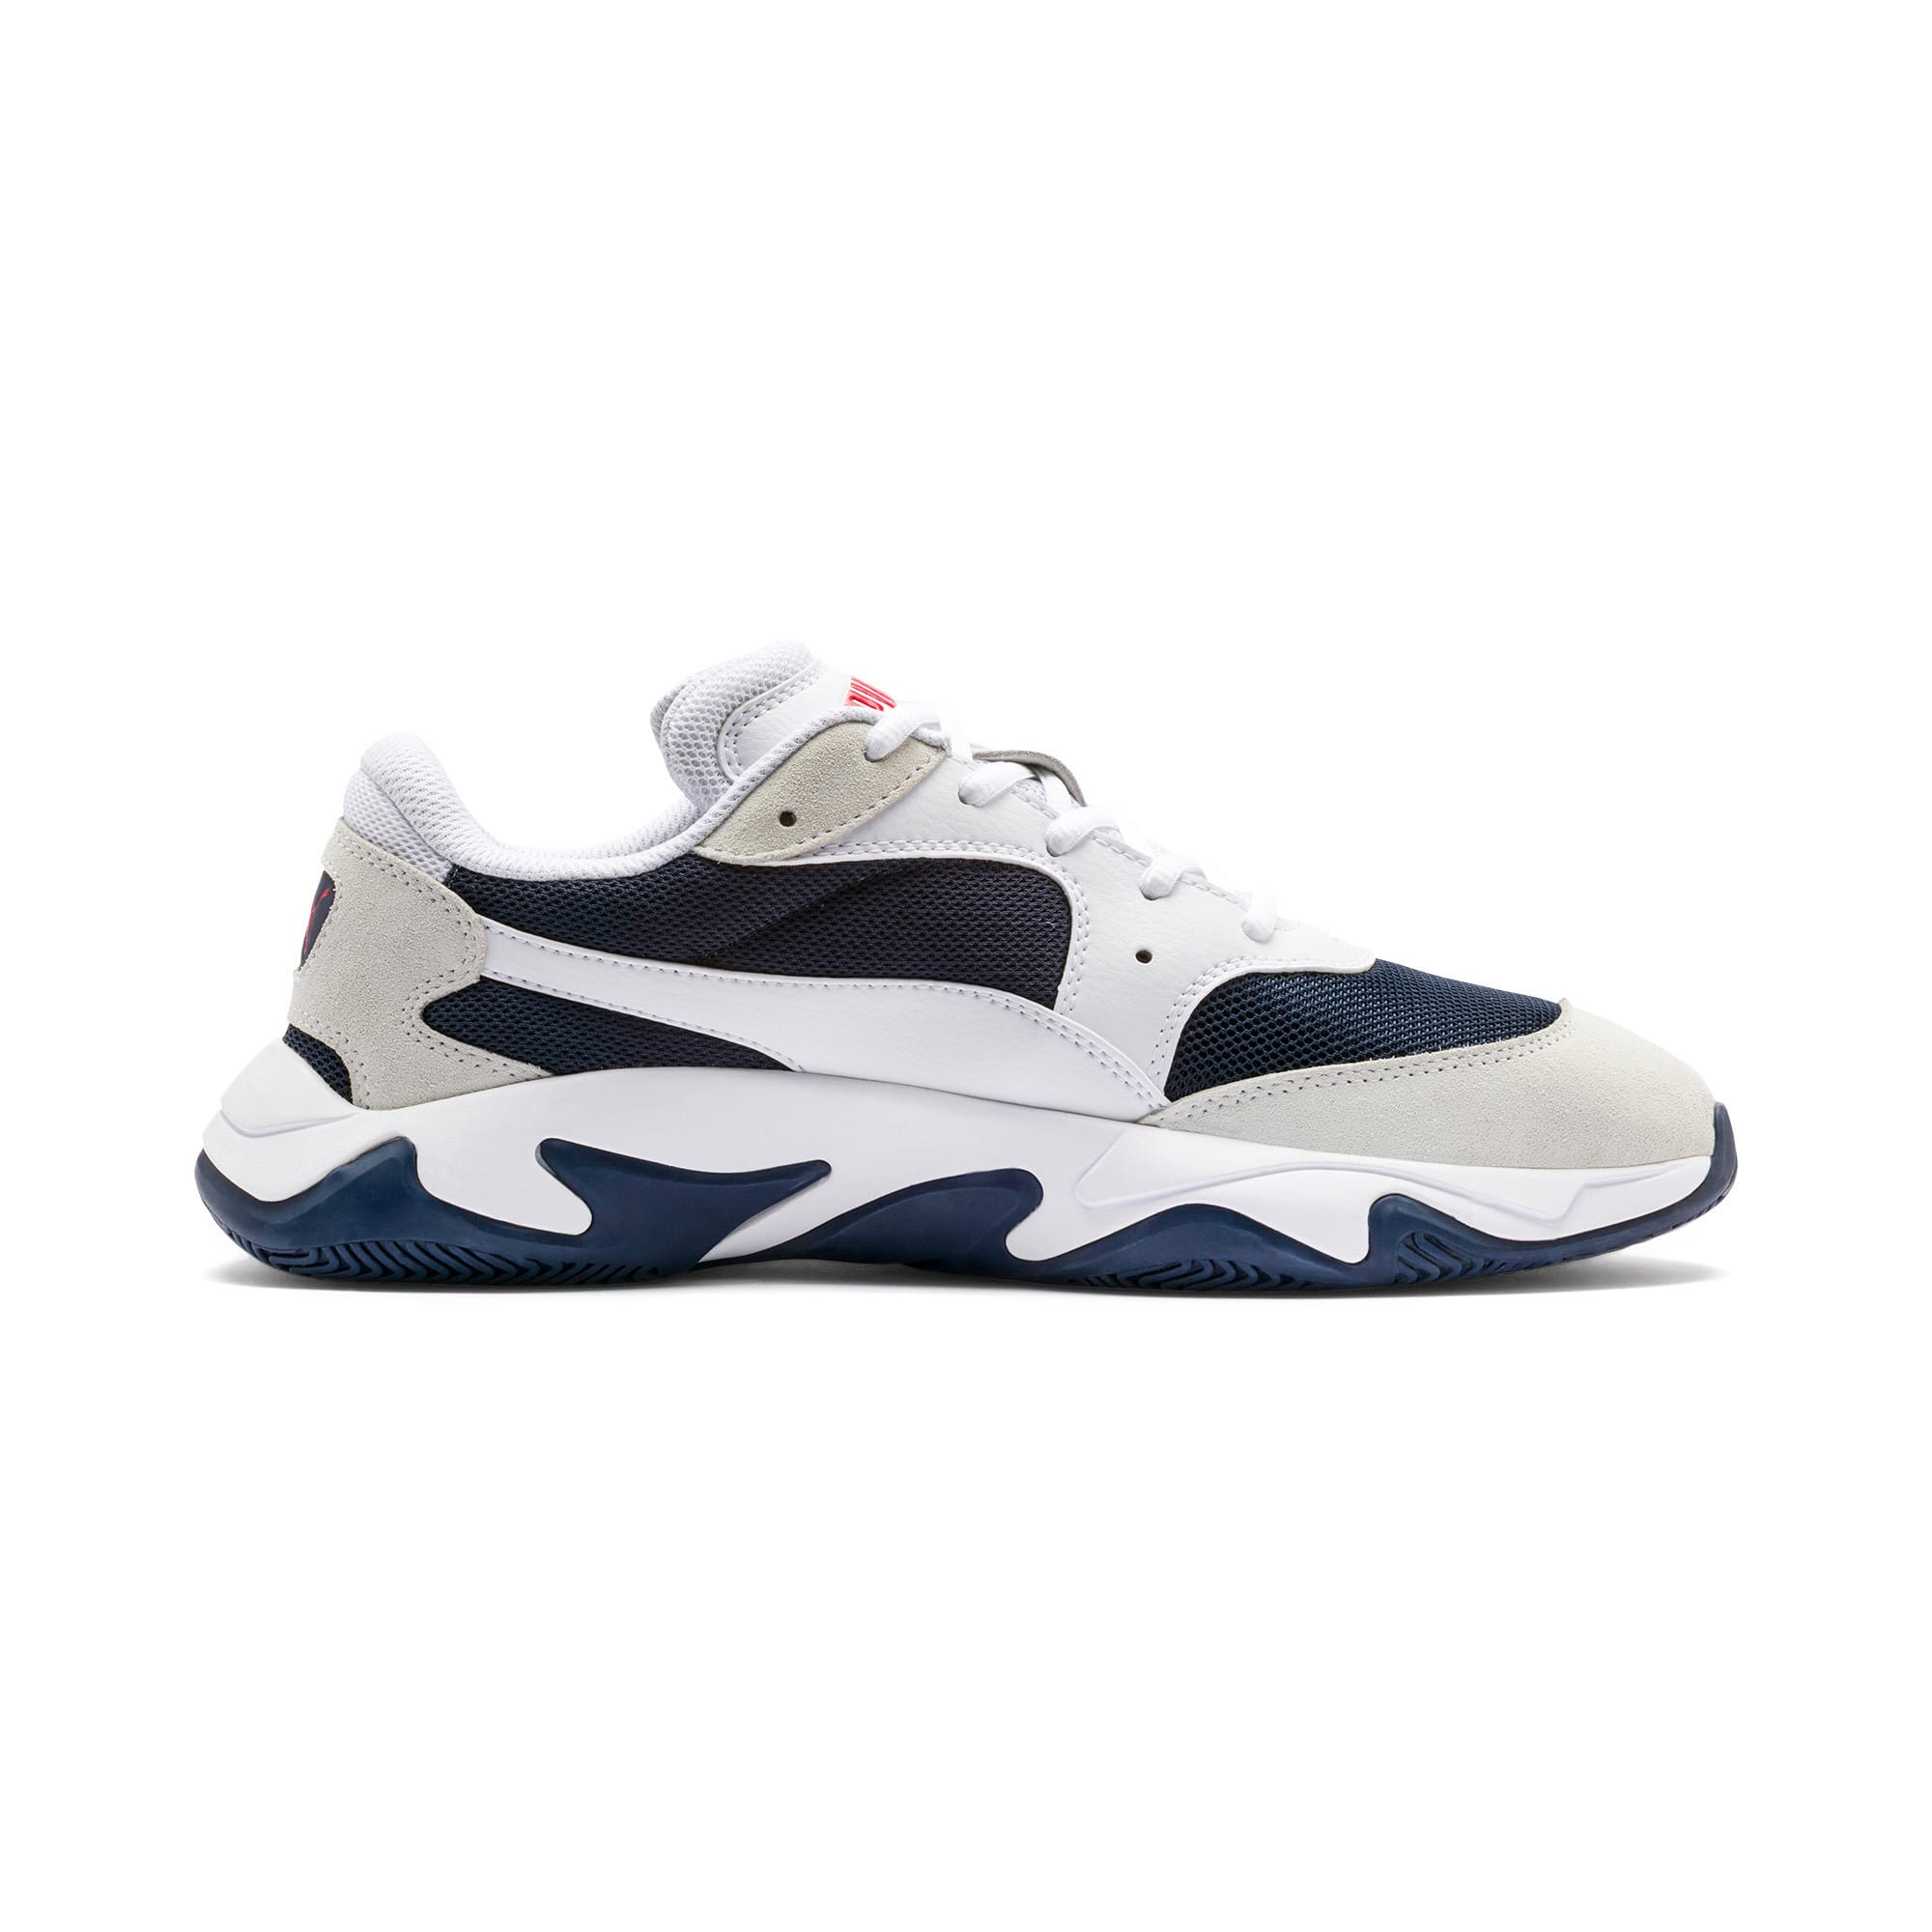 Thumbnail 6 of Storm Adrenaline Sneakers, Puma White-Peacoat, medium